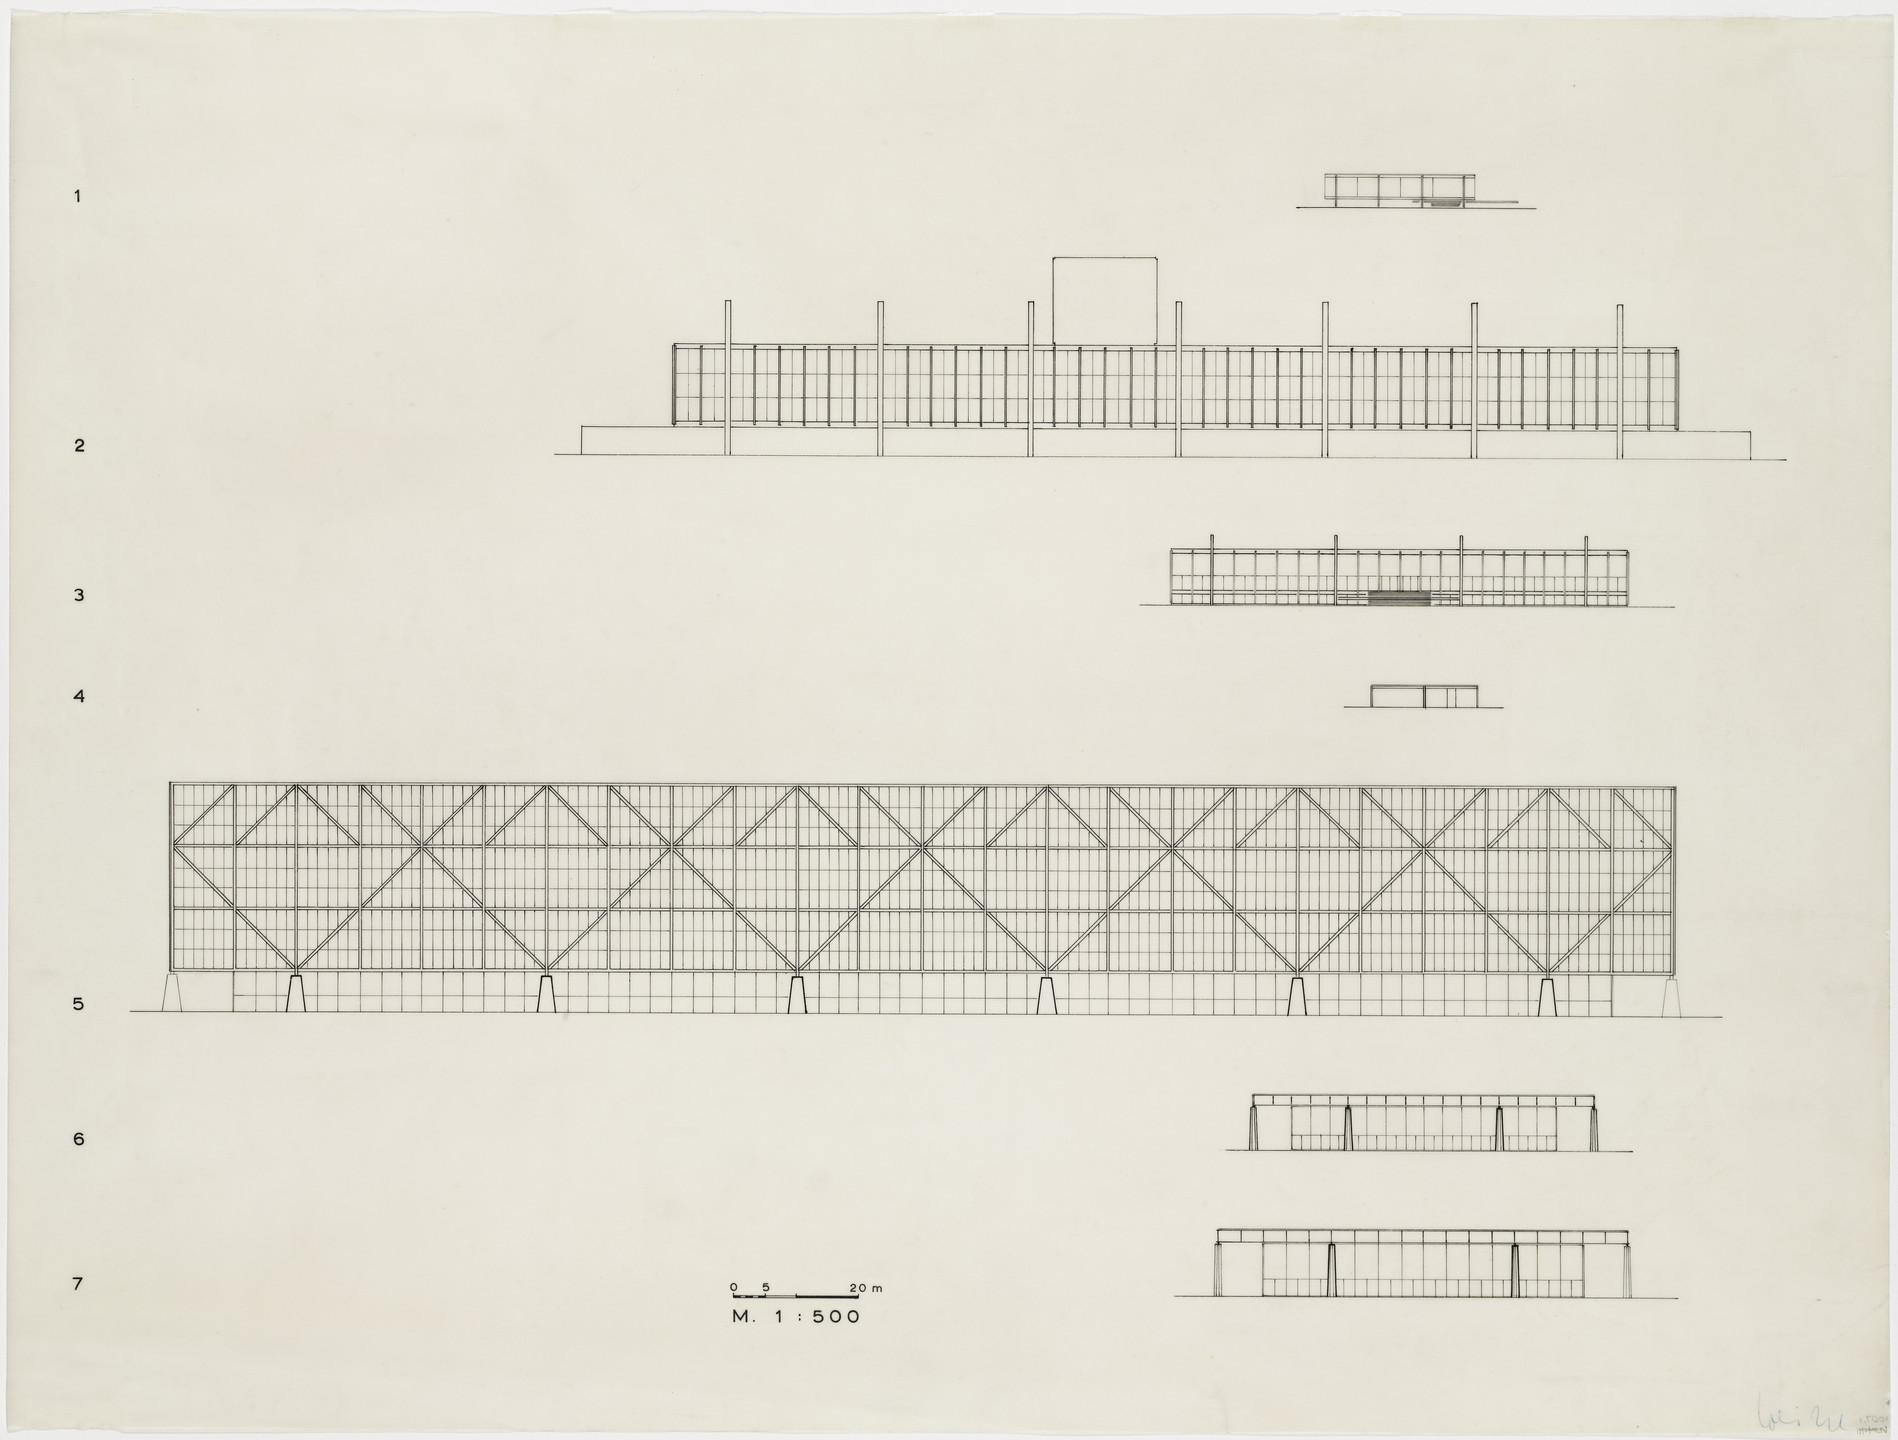 Ludwig Mies van der Rohe. Comparative Elevations, Seven elevations of clear-span buildings. 1969